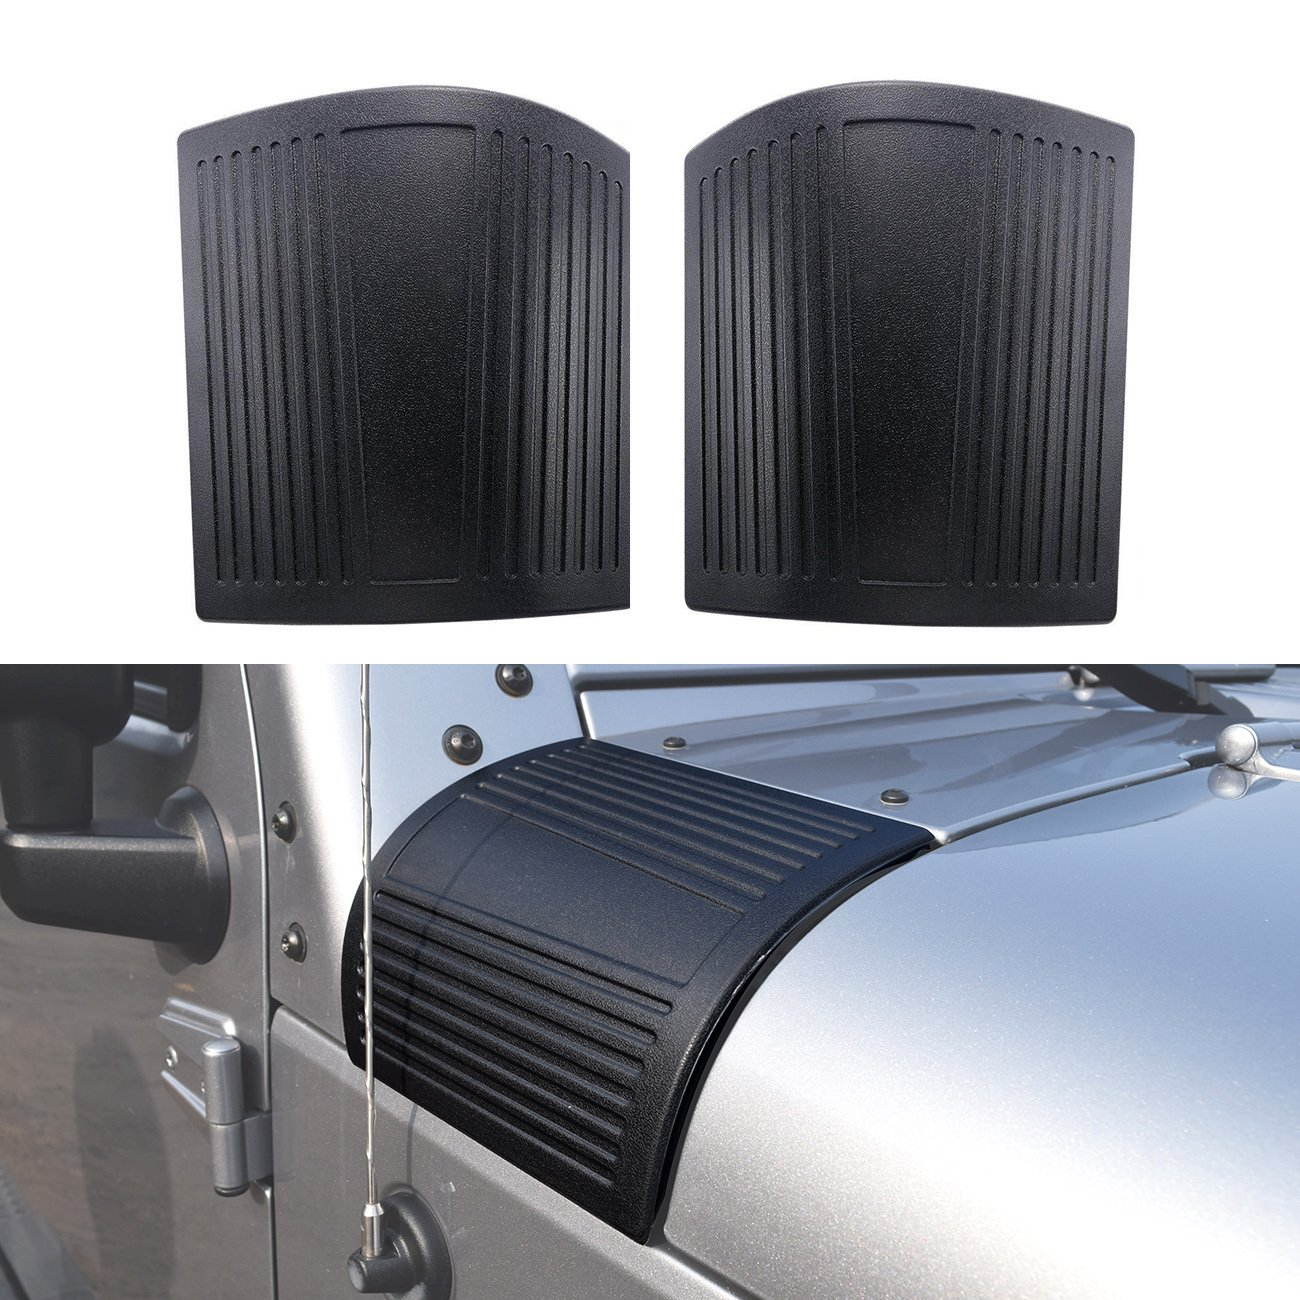 DIYTuning NEW Cowl Body Armor for Jeep Wrangler JK JKU Unlimited Rubicon Sahara X Off Road Sport Exterior Accessories Parts 2007 2008 2009 2010 2011 2012 2013 2014 2015 2016 2017 DIYMaker